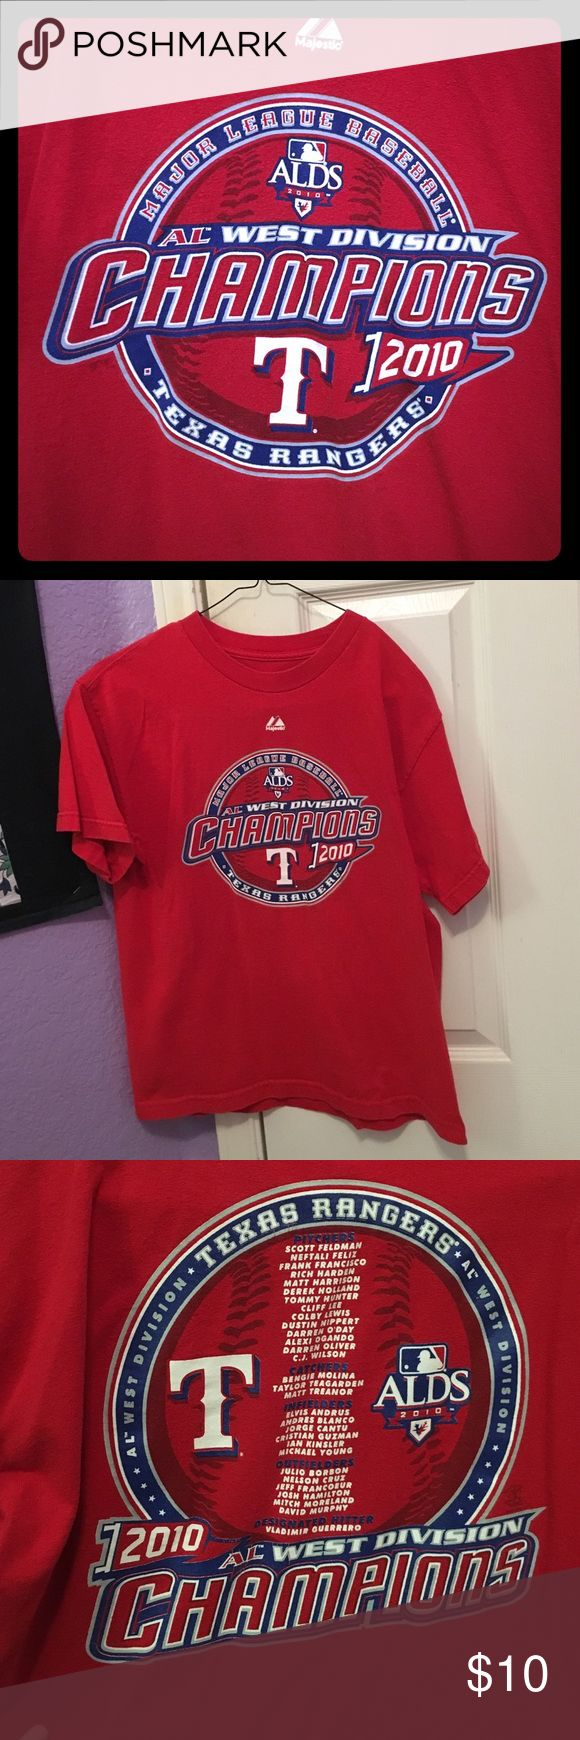 Texas Rangers Shirt Tee from when the Rangers won the AL West in 2010. Roster listed on the back. Does not say a size but fits like adult small. Used but in good condition. PLEASE READ THE ENTIRE DESCRIPTION BEFORE PURCHASING! 🚫 NO TRADES. NO HOLDS. NO MERC@RI 🚫📩 I only respond to offers made through the offer button 📩  🙋🏼Questions? Just ask! Serious inquiries only please. EVERYTHING MUST GO!! 💁🏼 Majestic Shirts Tees - Short Sleeve